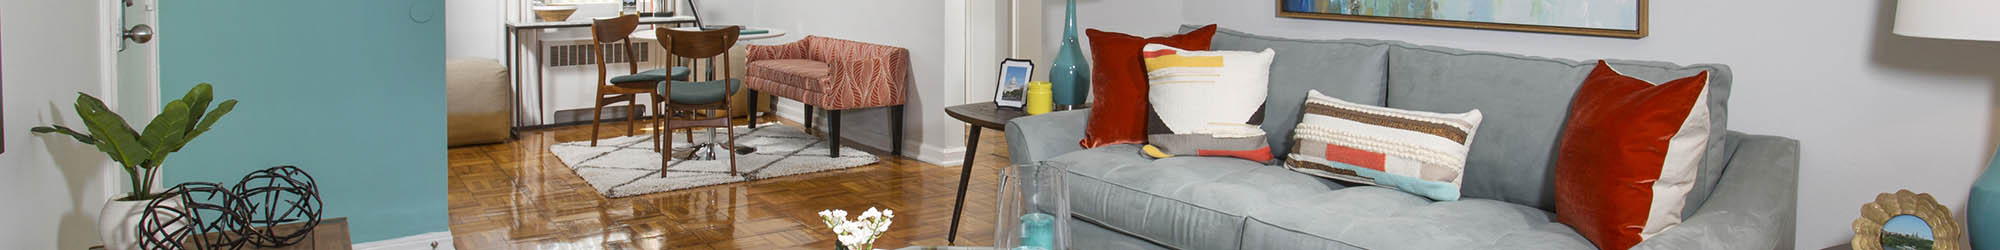 Reviews of our apartments in Mount Rainier, MD